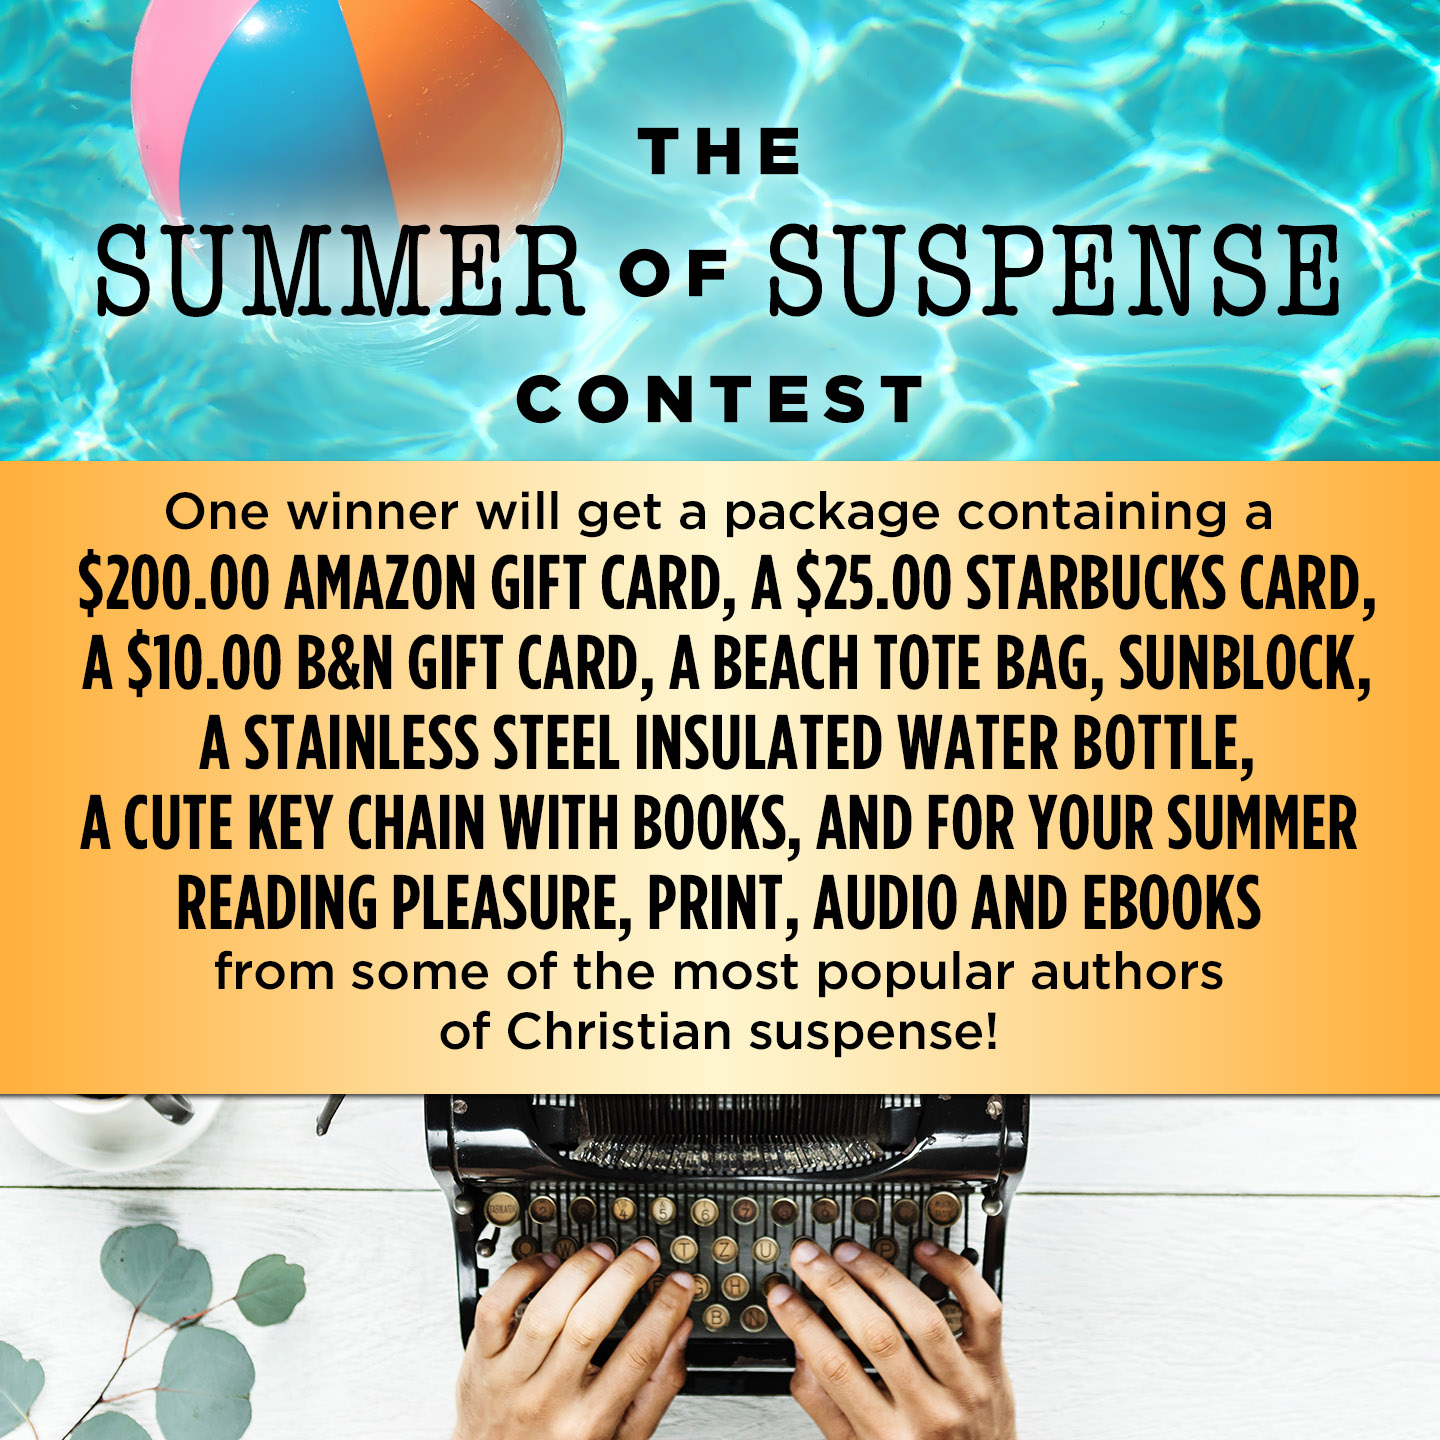 SUSPENSE SISTERS: SUMMER OF SUSPENSE CONTEST!